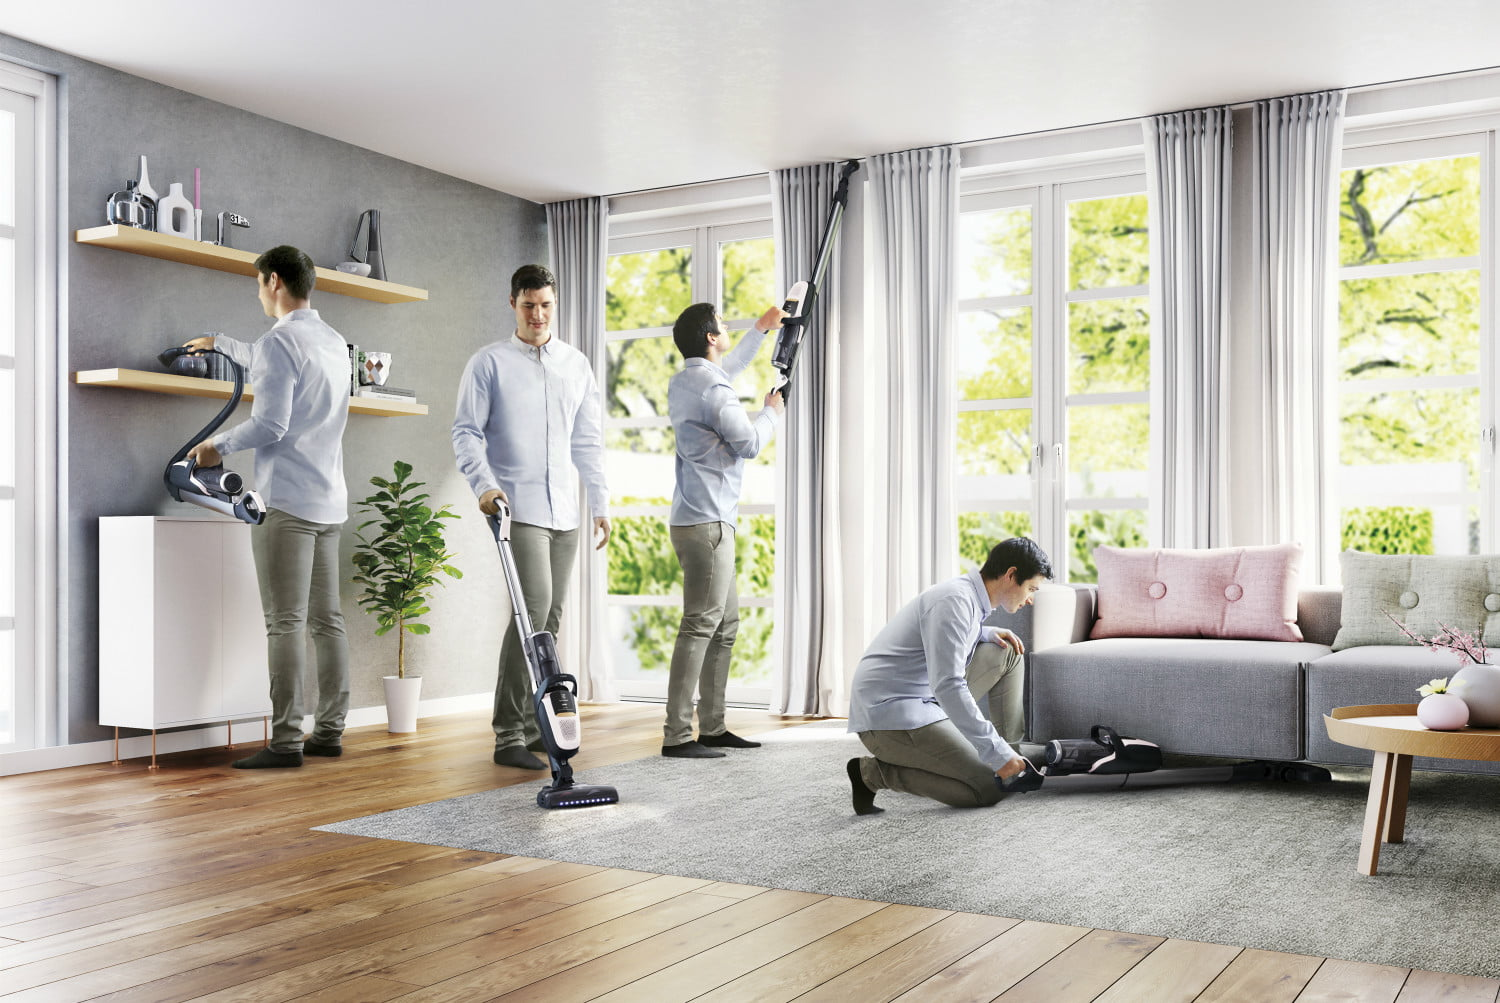 electrolux introduces the versatile pure f9 cordless vacuum cleaner rh digitaltrends com Owner's Manual Instruction Manual Example